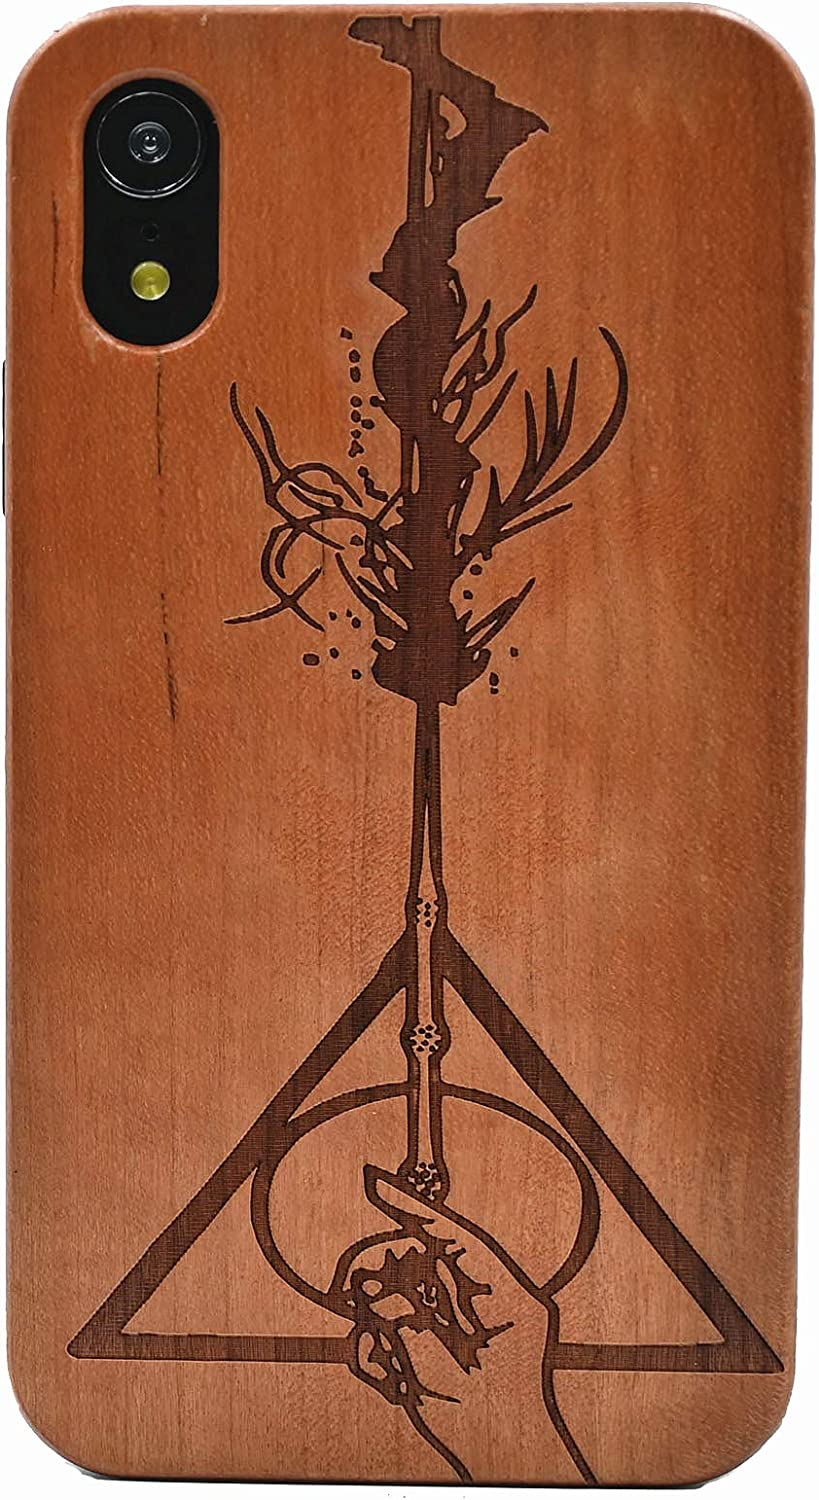 CYD Wooden Case for iPhone XR,Natural Real Wood Engraved Hallows Magic Wand Shockproof Drop Proof Slim Bumper TPU Protective Cover for iPhone XR